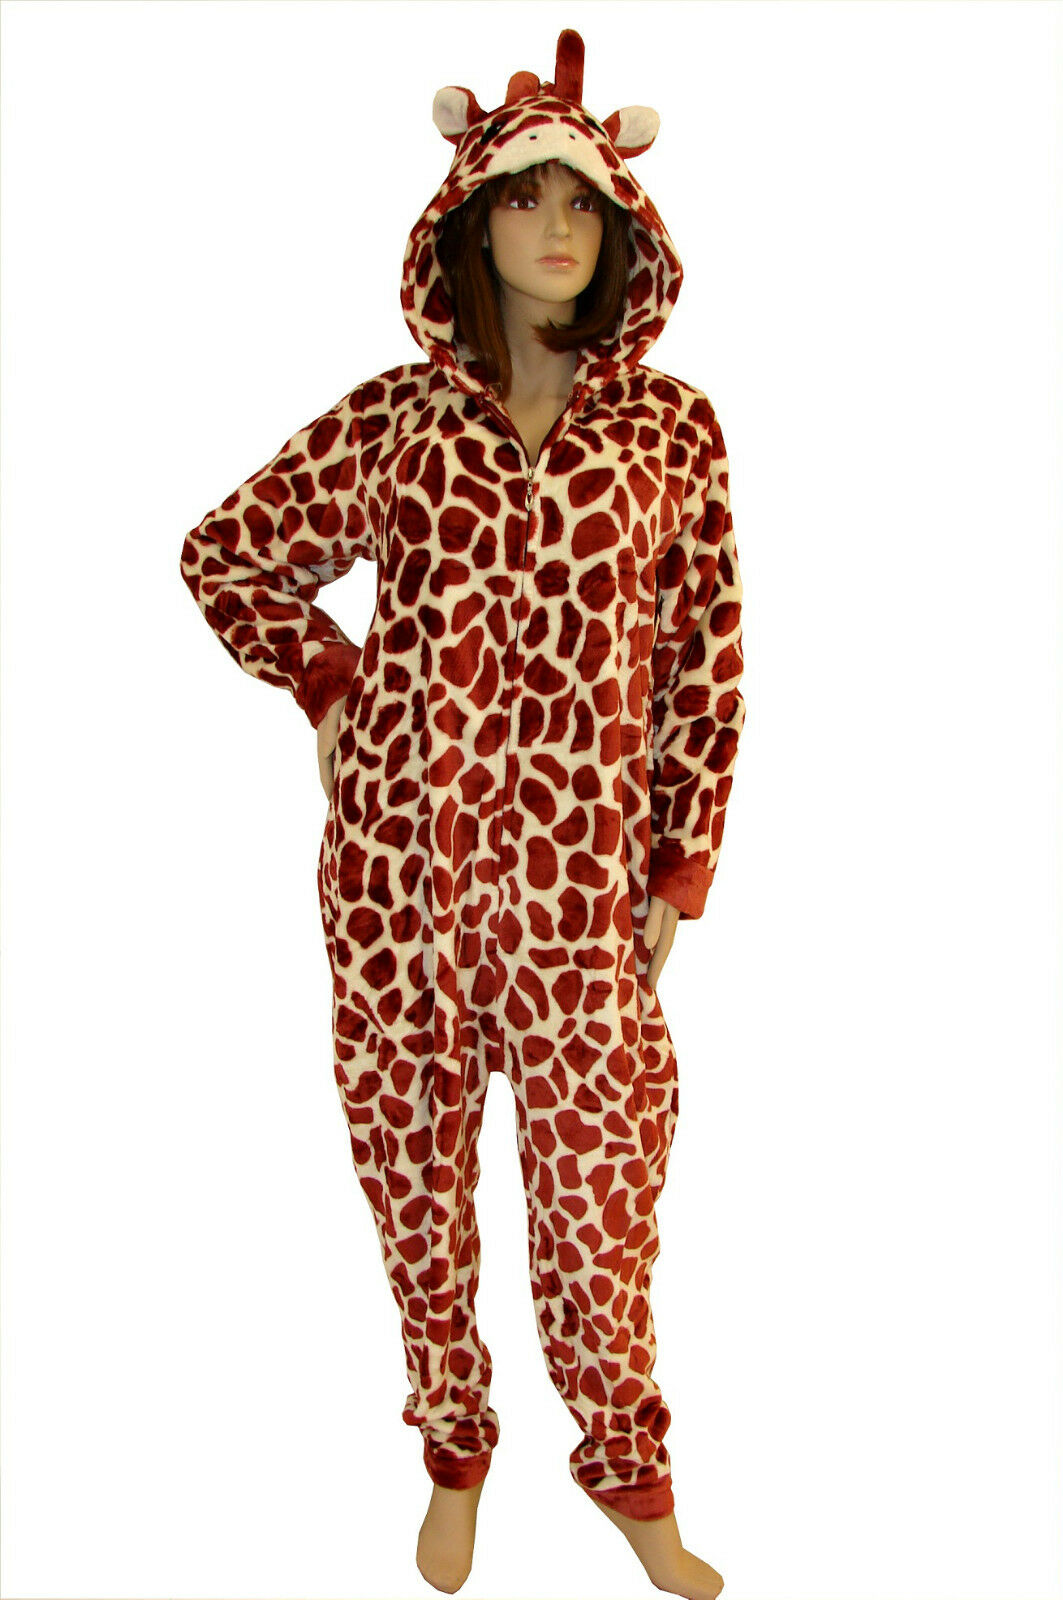 SEXY Pigiama GIRAFFA Tuta intera women Ragazza casa costume  ANIMALI brown